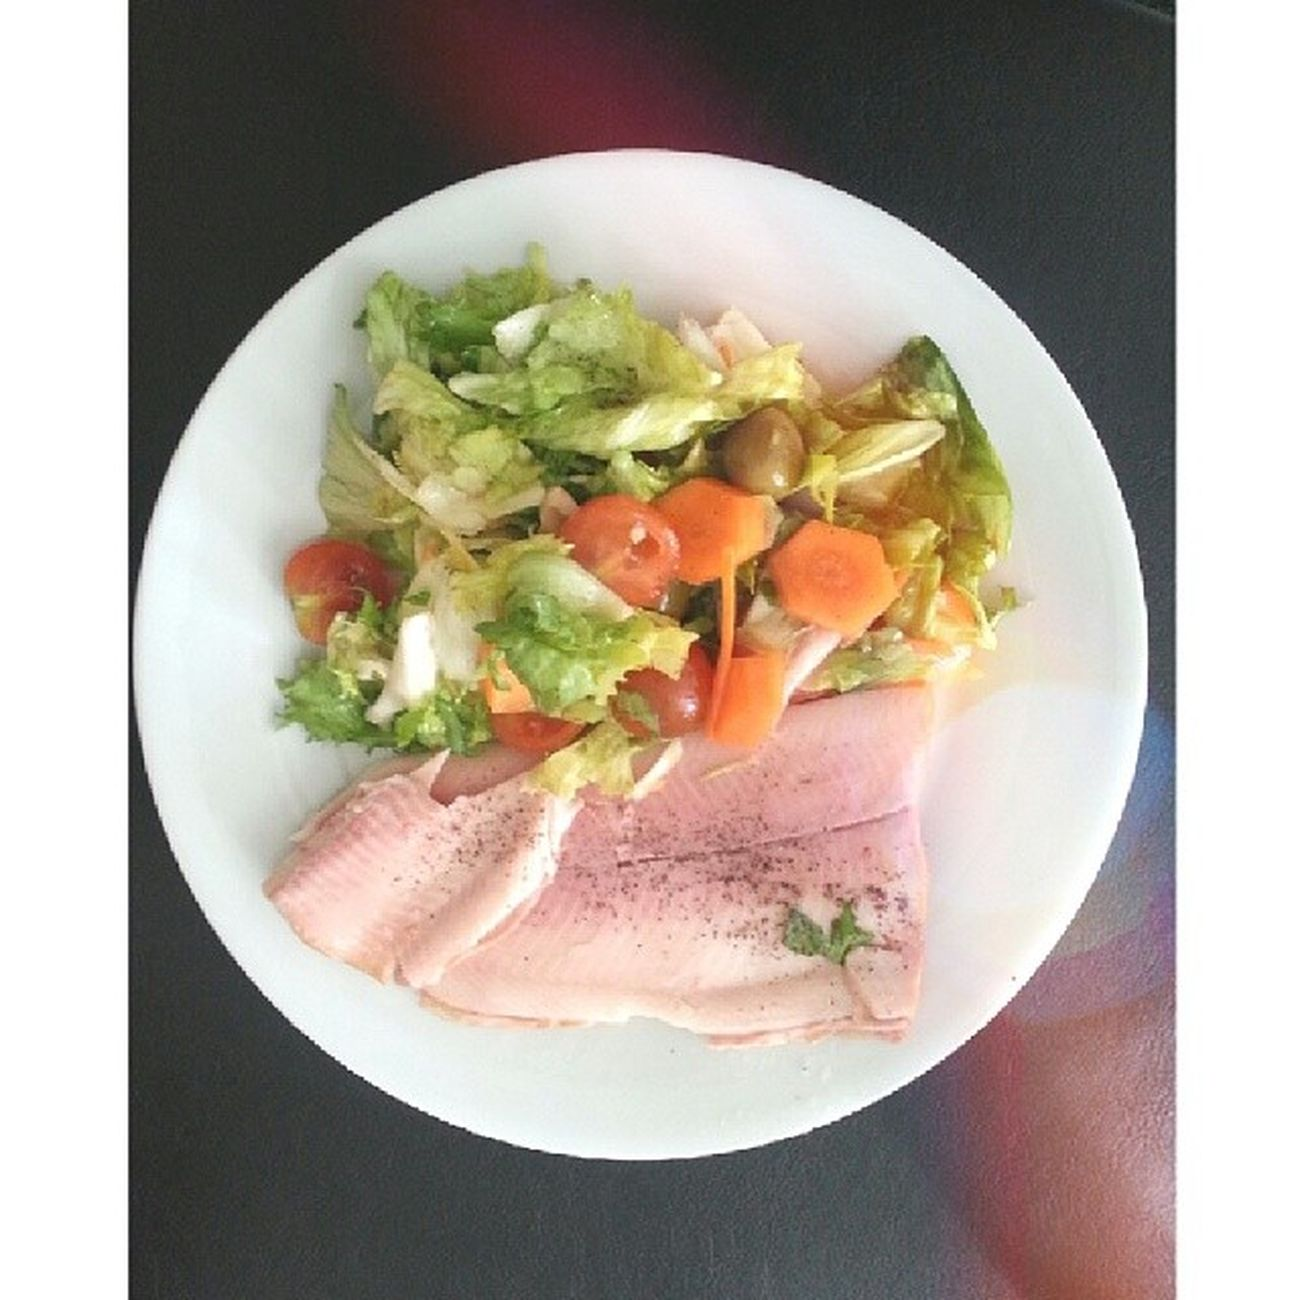 Smokedtrout and Salad after gym